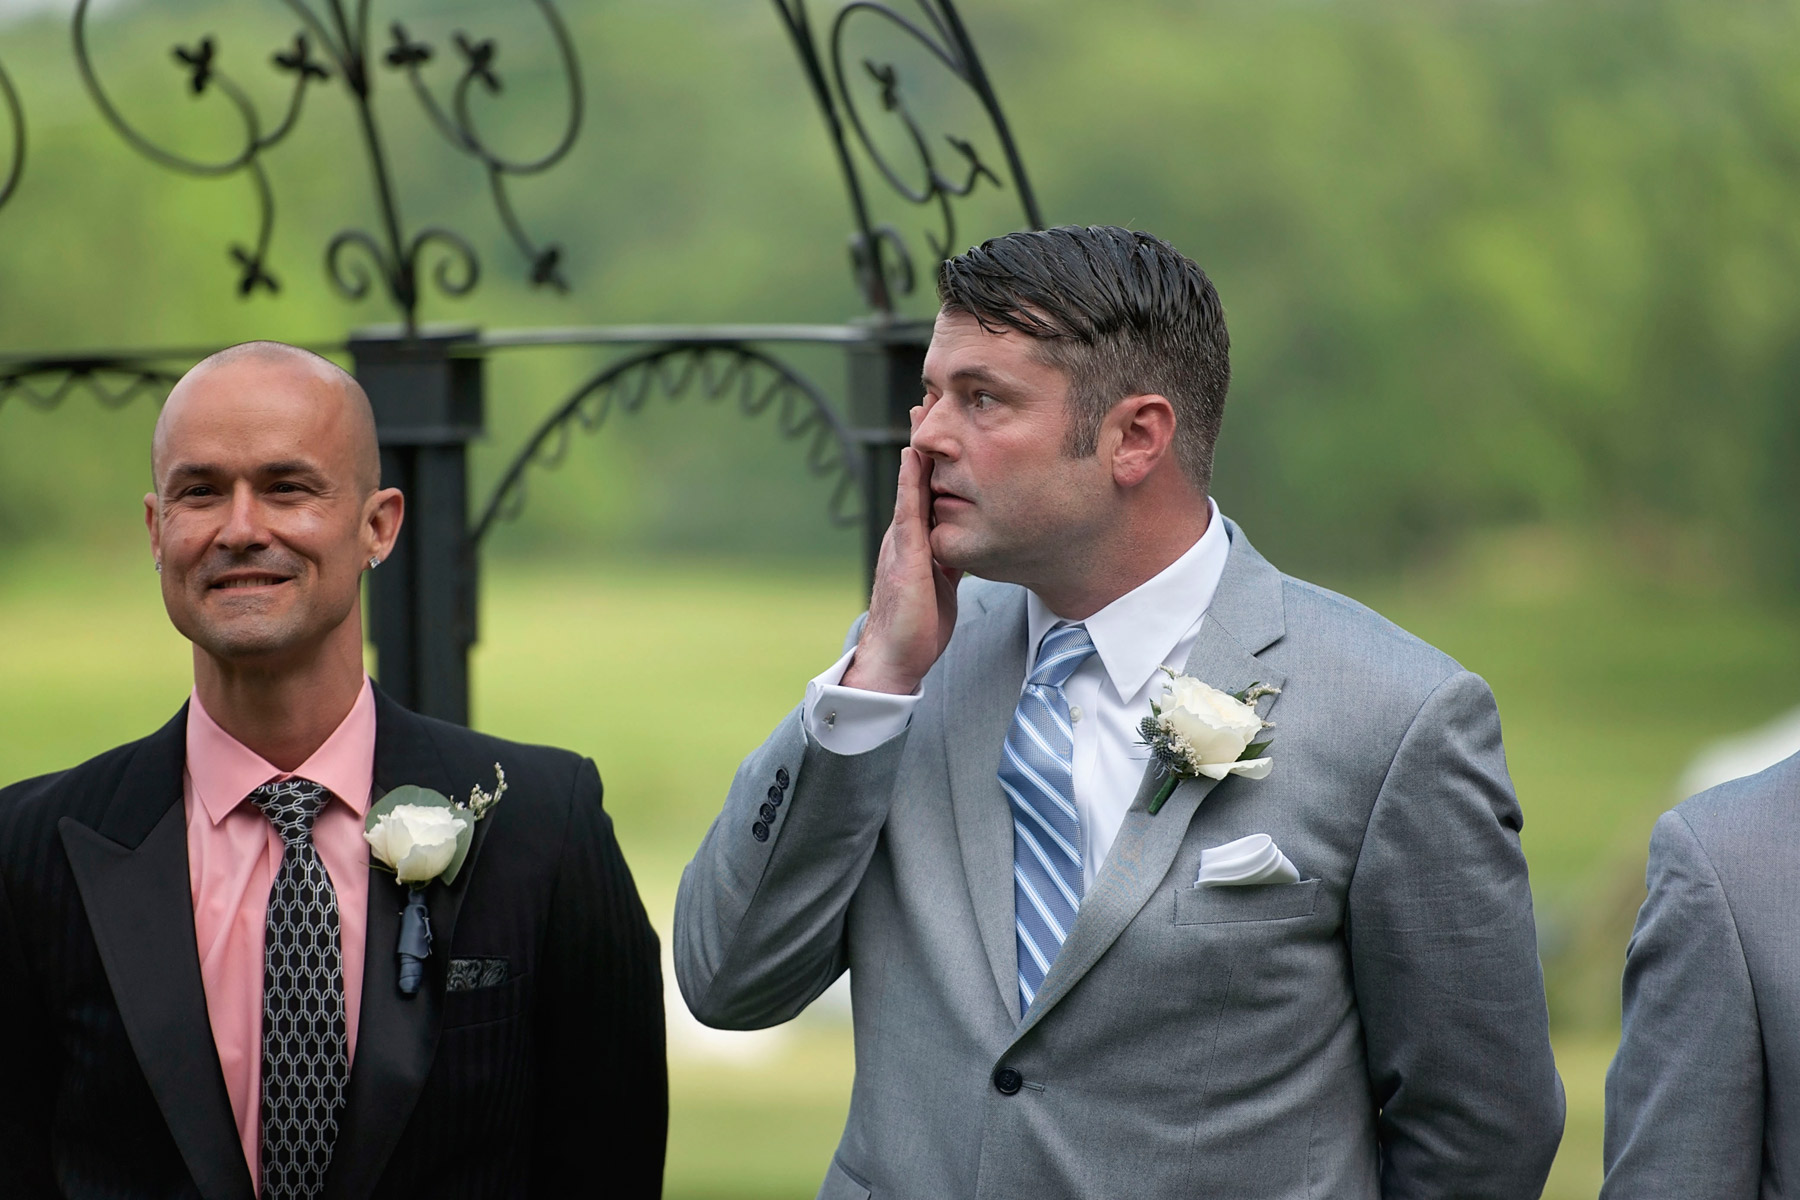 Groom wipes a tear as he sees his bride coming down the aisle